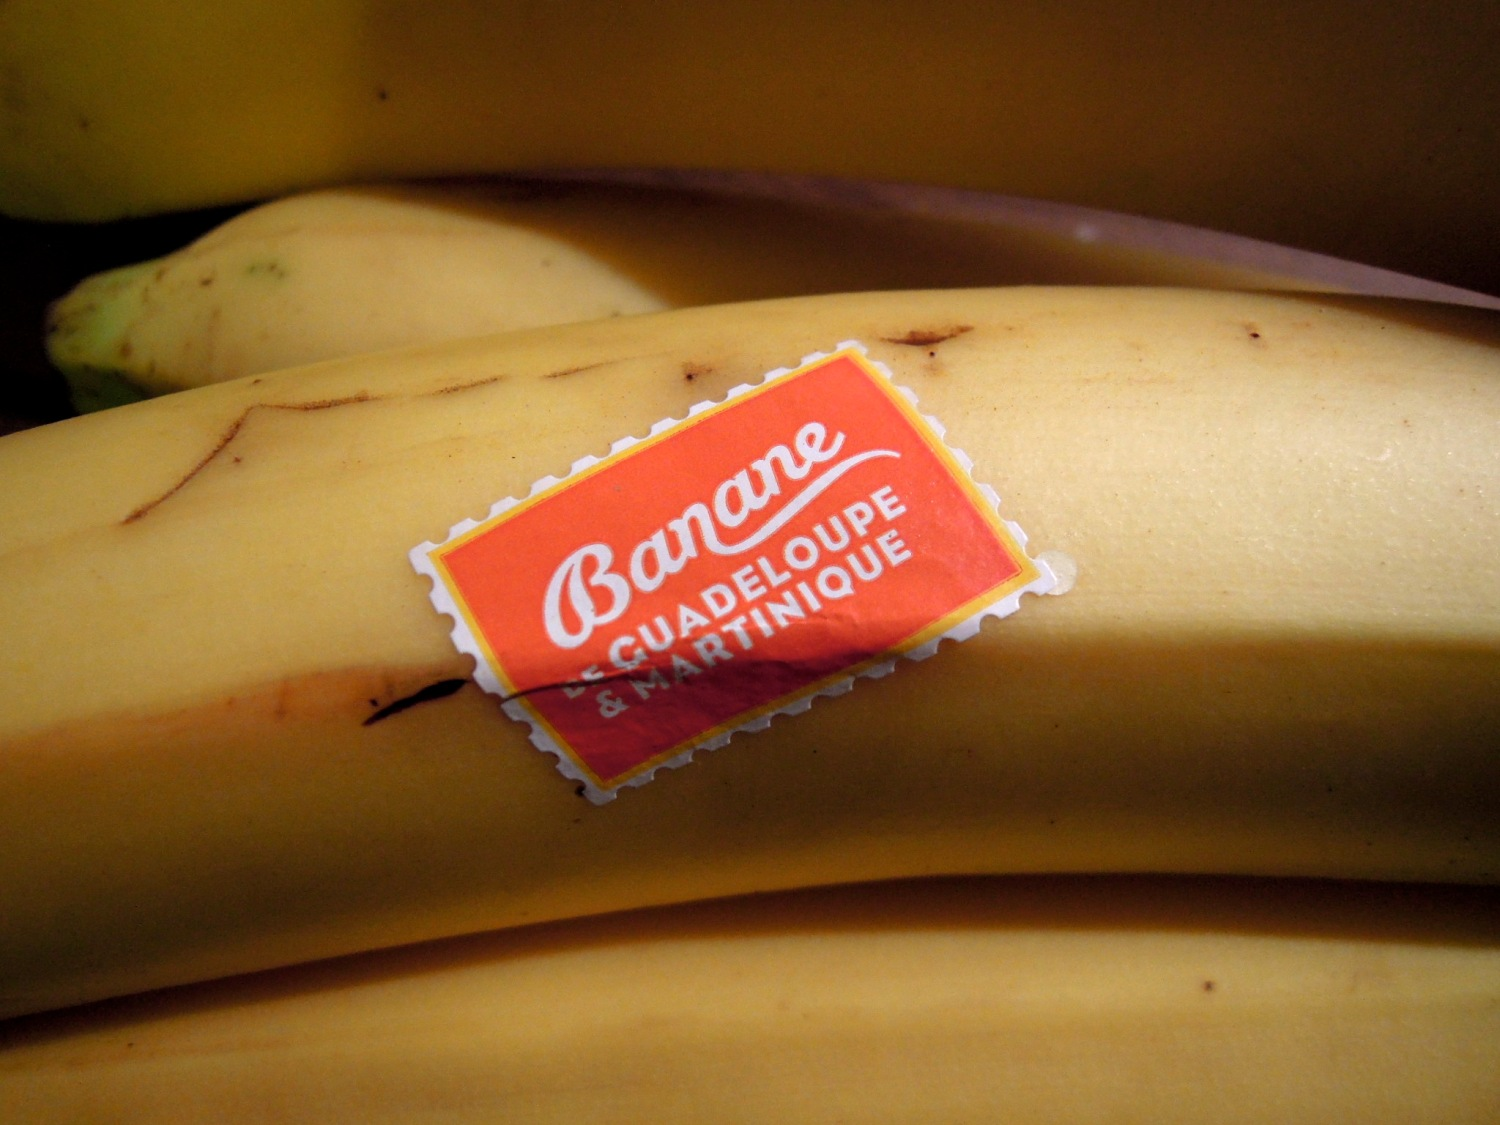 Bananas with sticker saying they are from Guadeloupe or Martinique